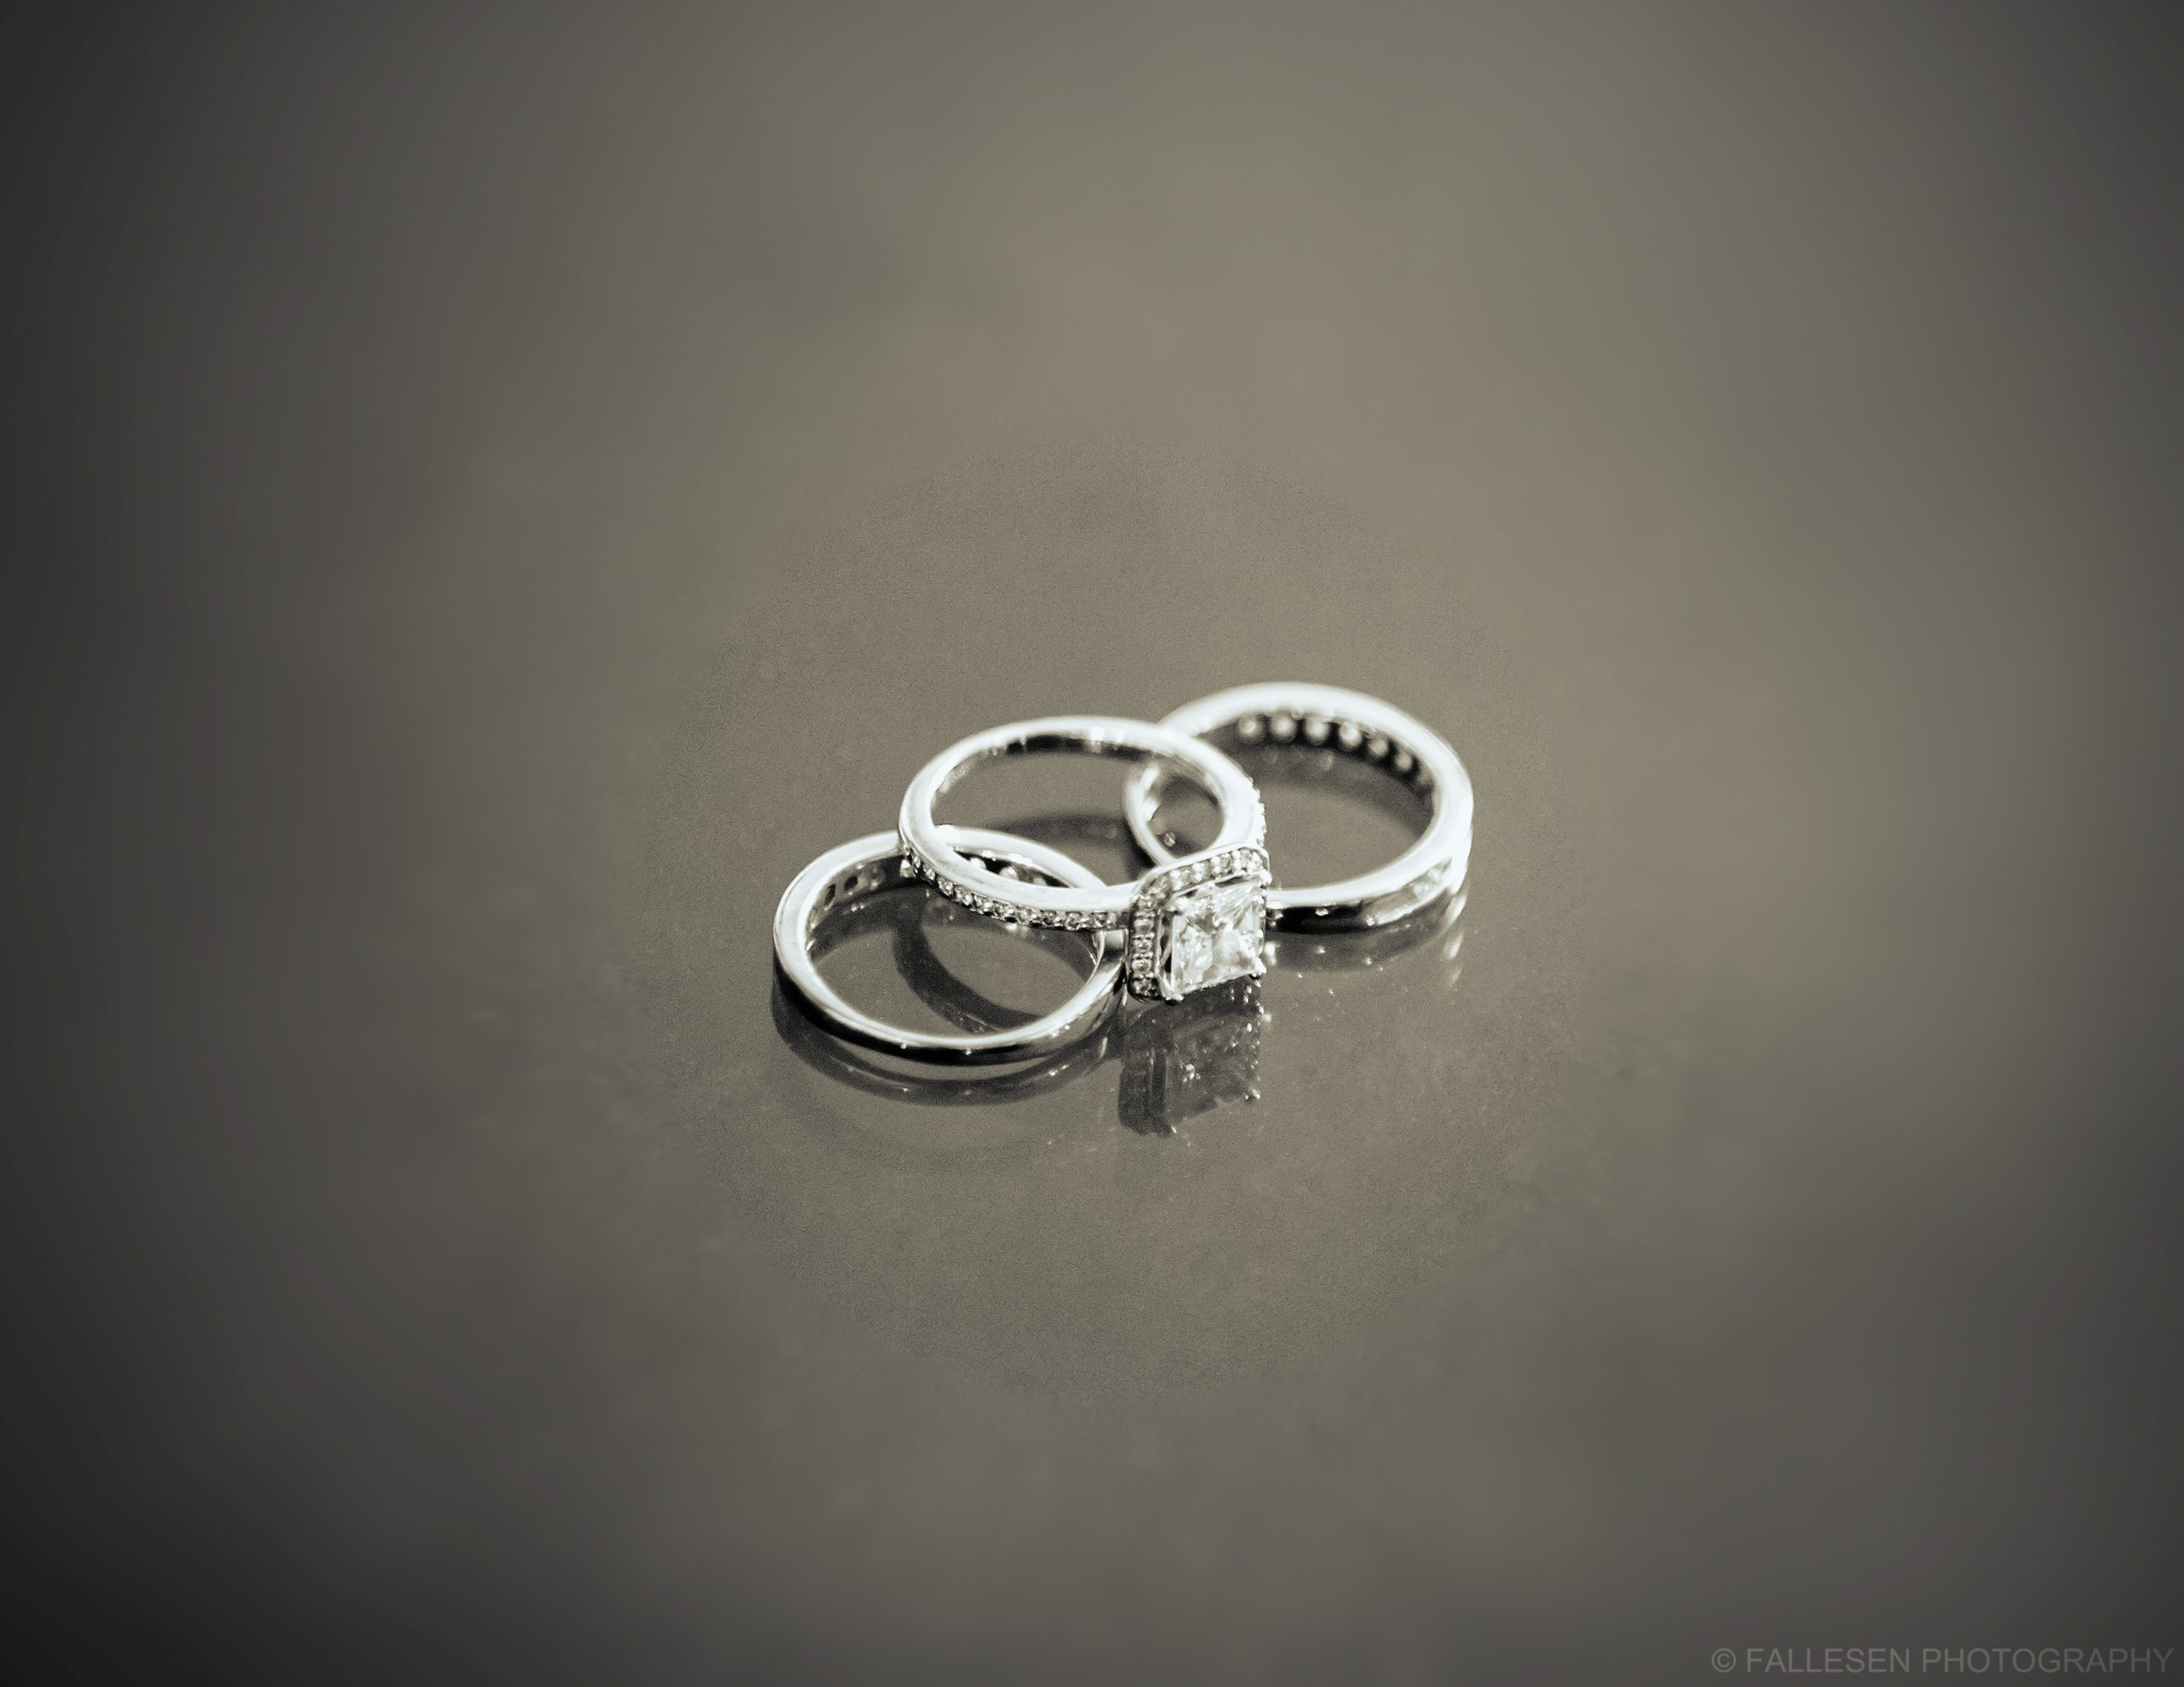 Before wedding photo, rings, herberger wedding, Buffalo NY by Fallesen Photography LLC